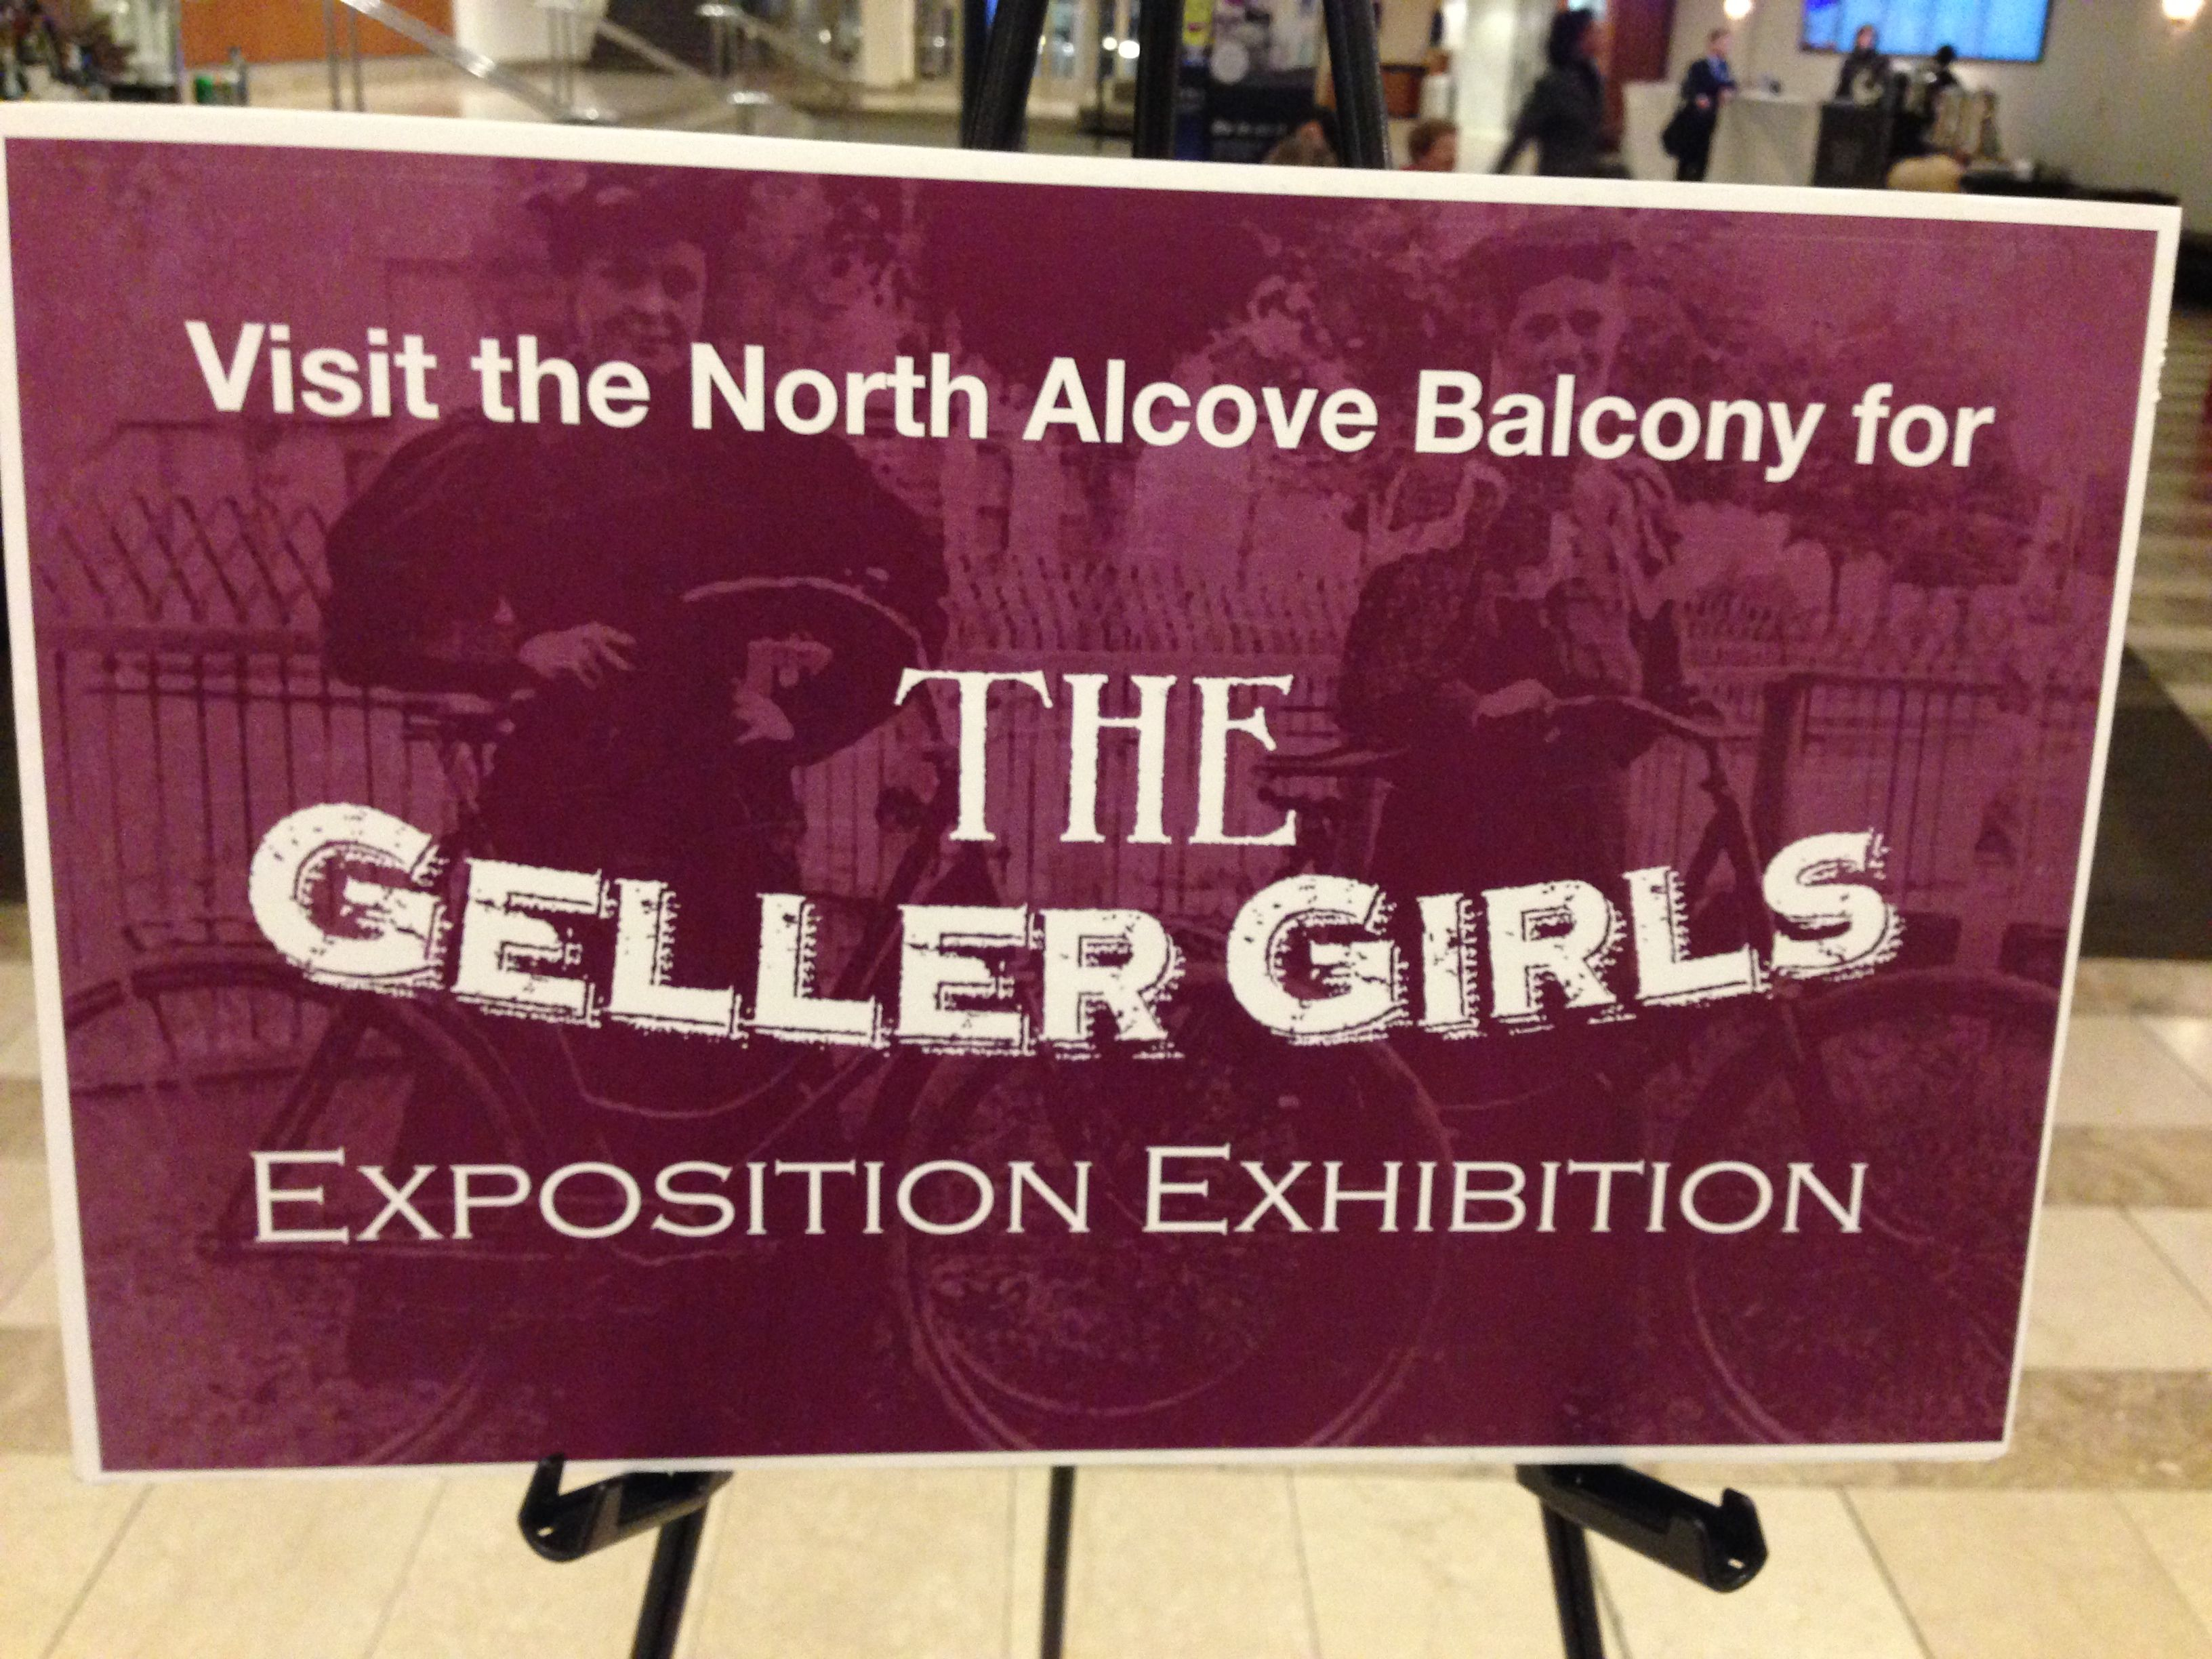 If you get a chance to see The Geller Girls performance at the Alliance Theatre, stop by the Exposition Exhibition located in the North Alcove Balcony presented by the Atlanta History Center.